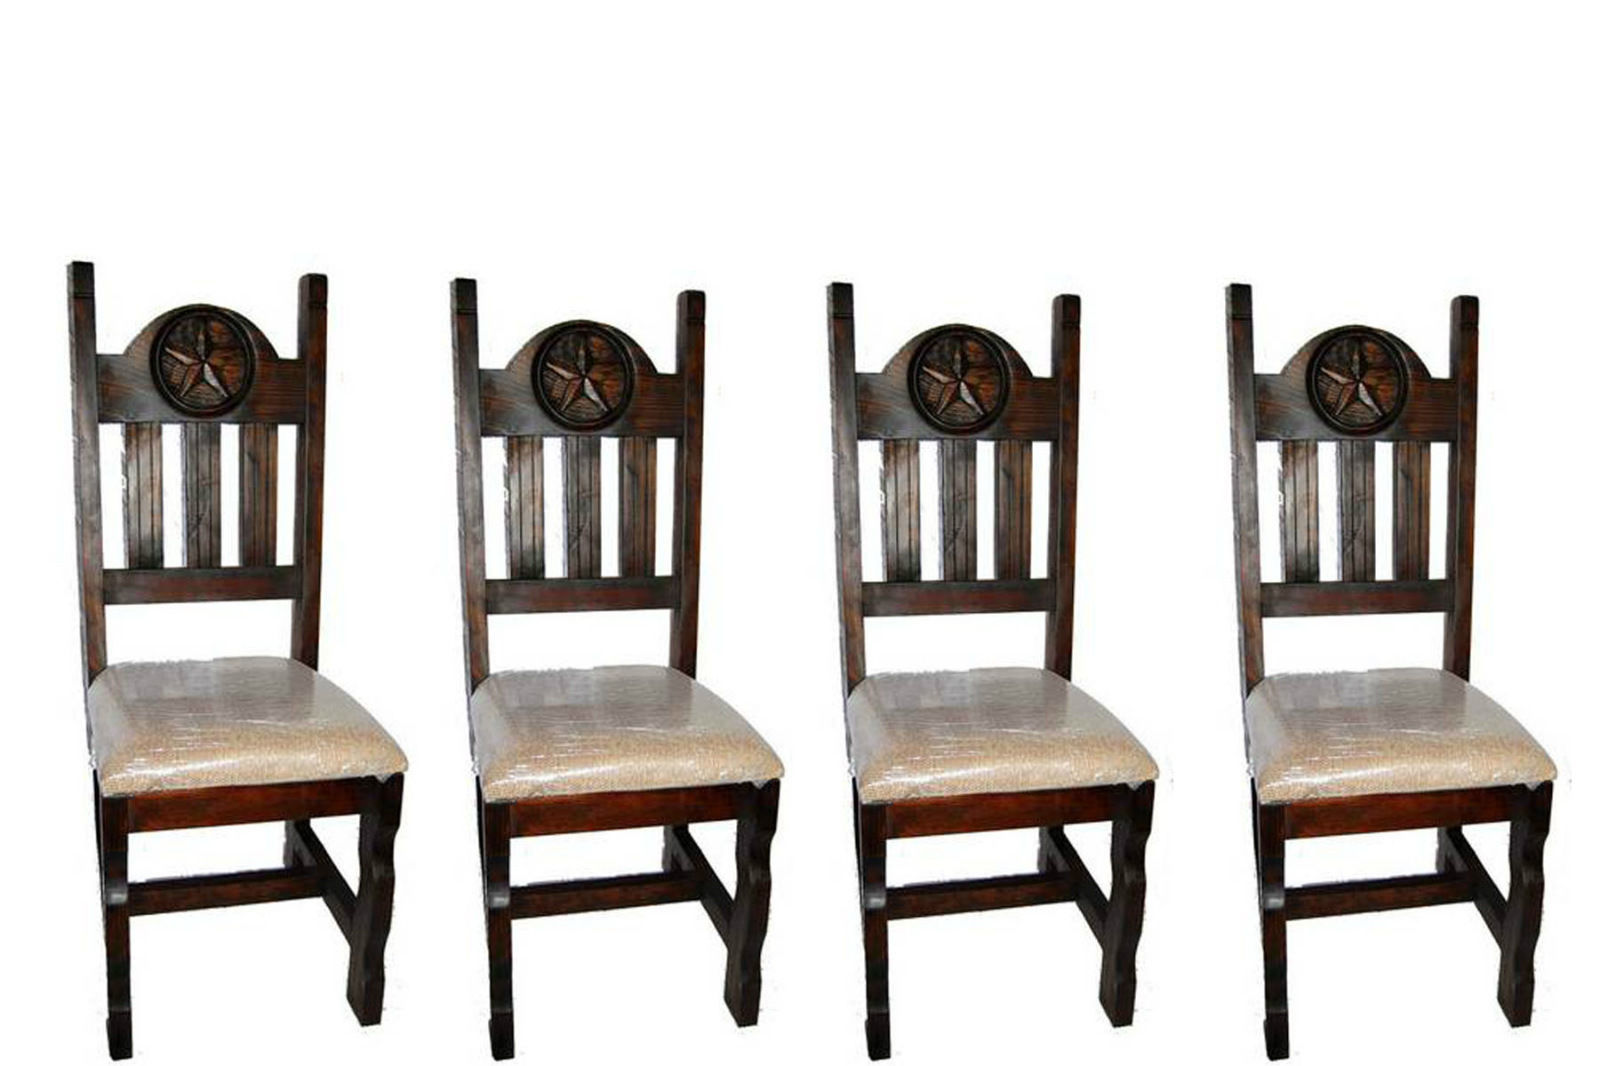 Set of Four Dark Star Padded Seat Chair Real Solid Wood Rustic Western Cabin